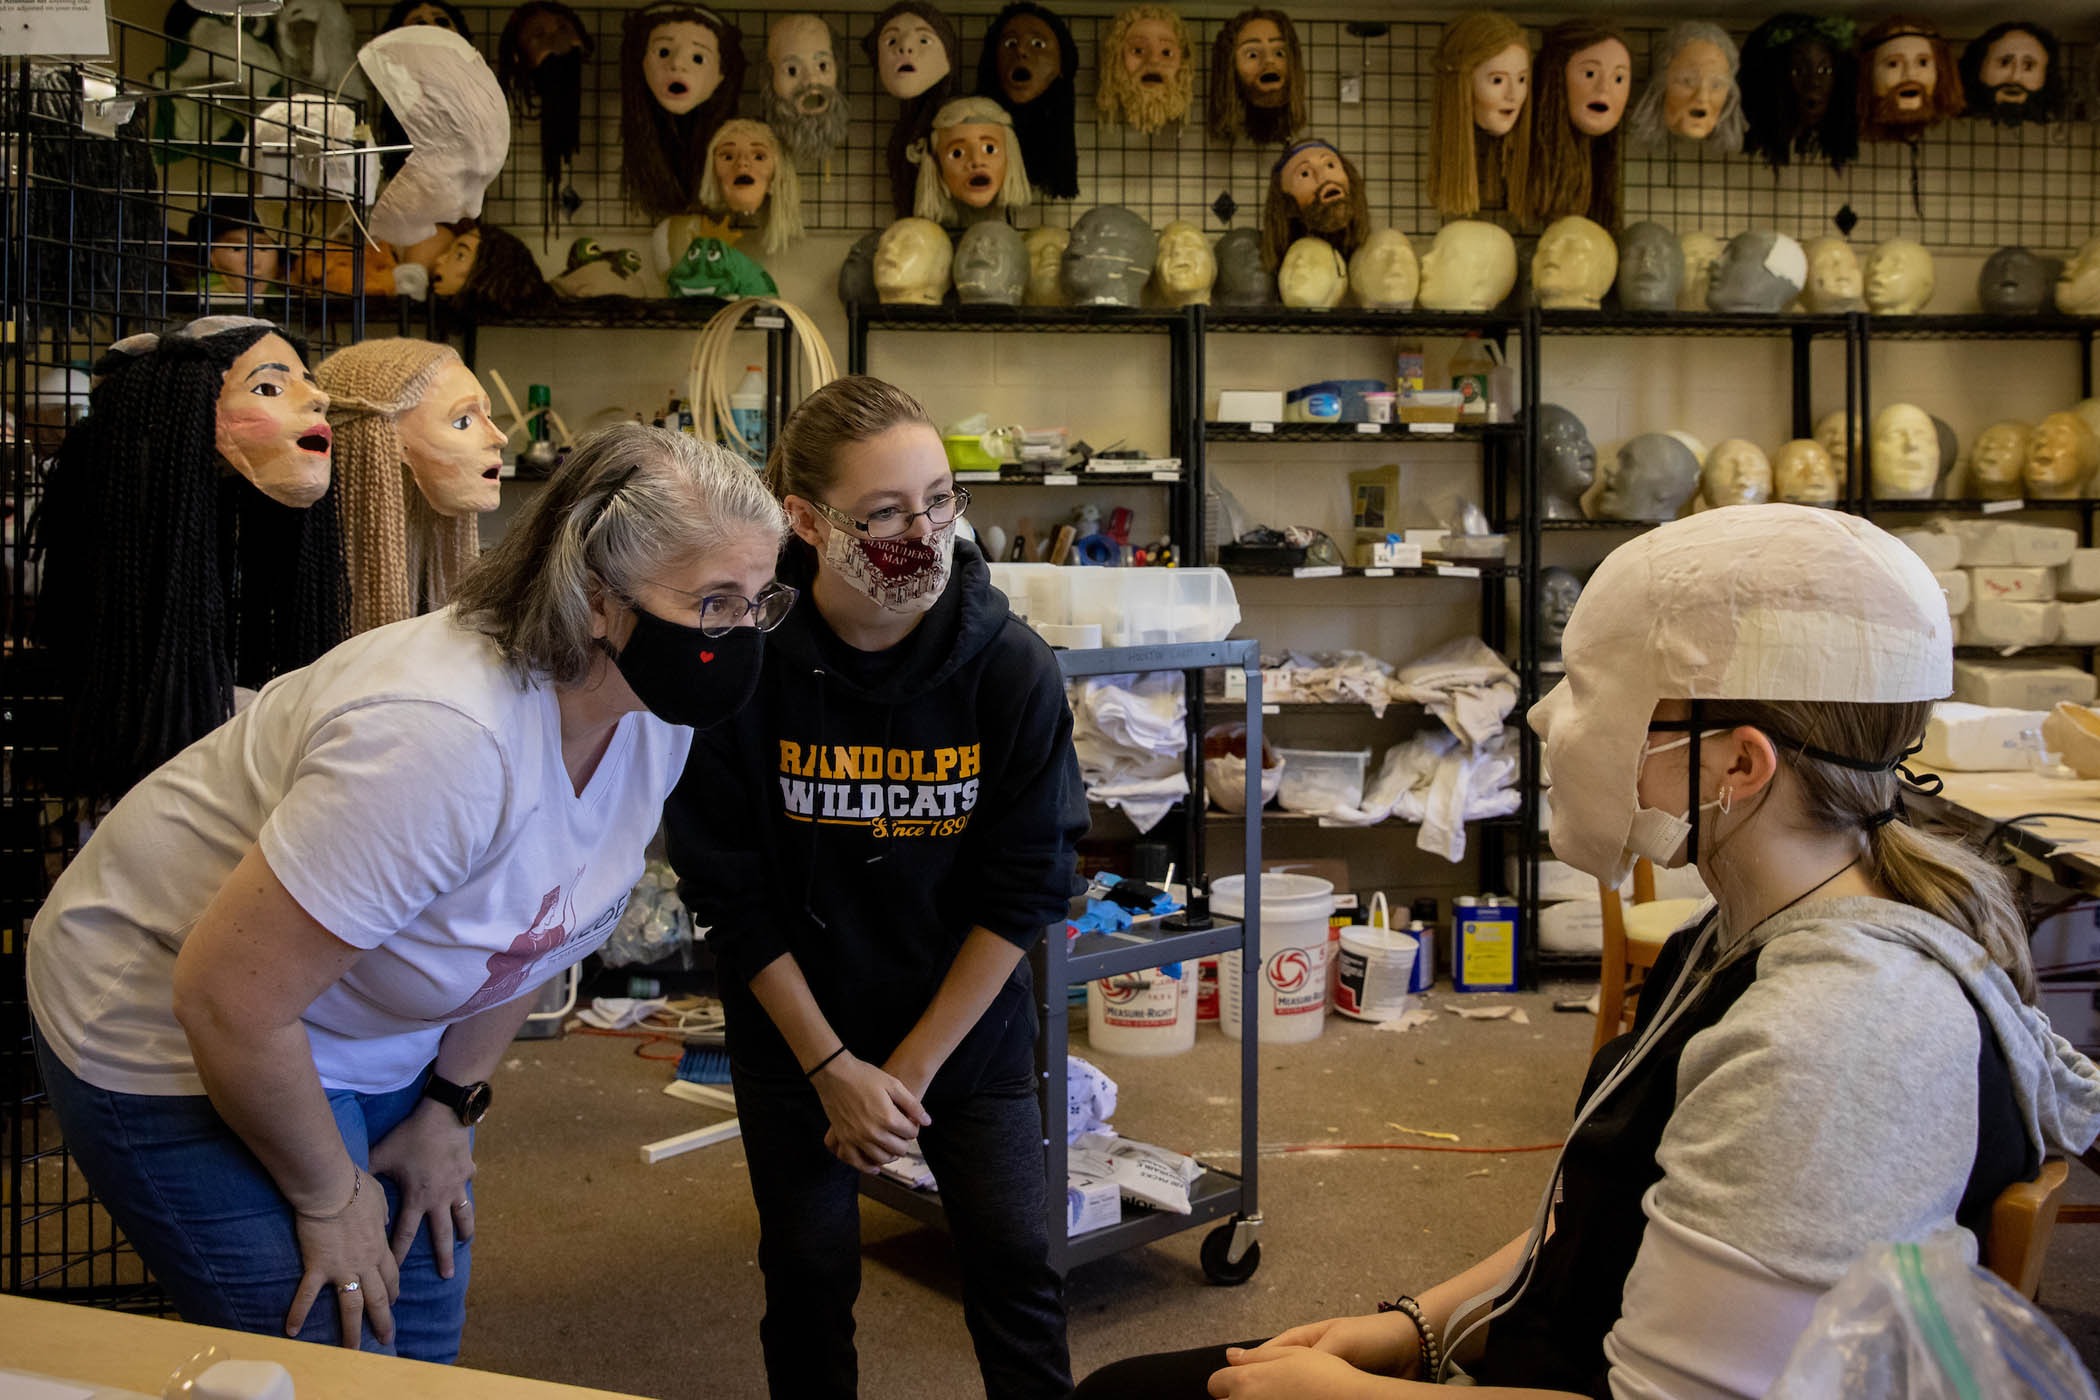 Masks are custom made and scientifically designed to project the actor's voice.